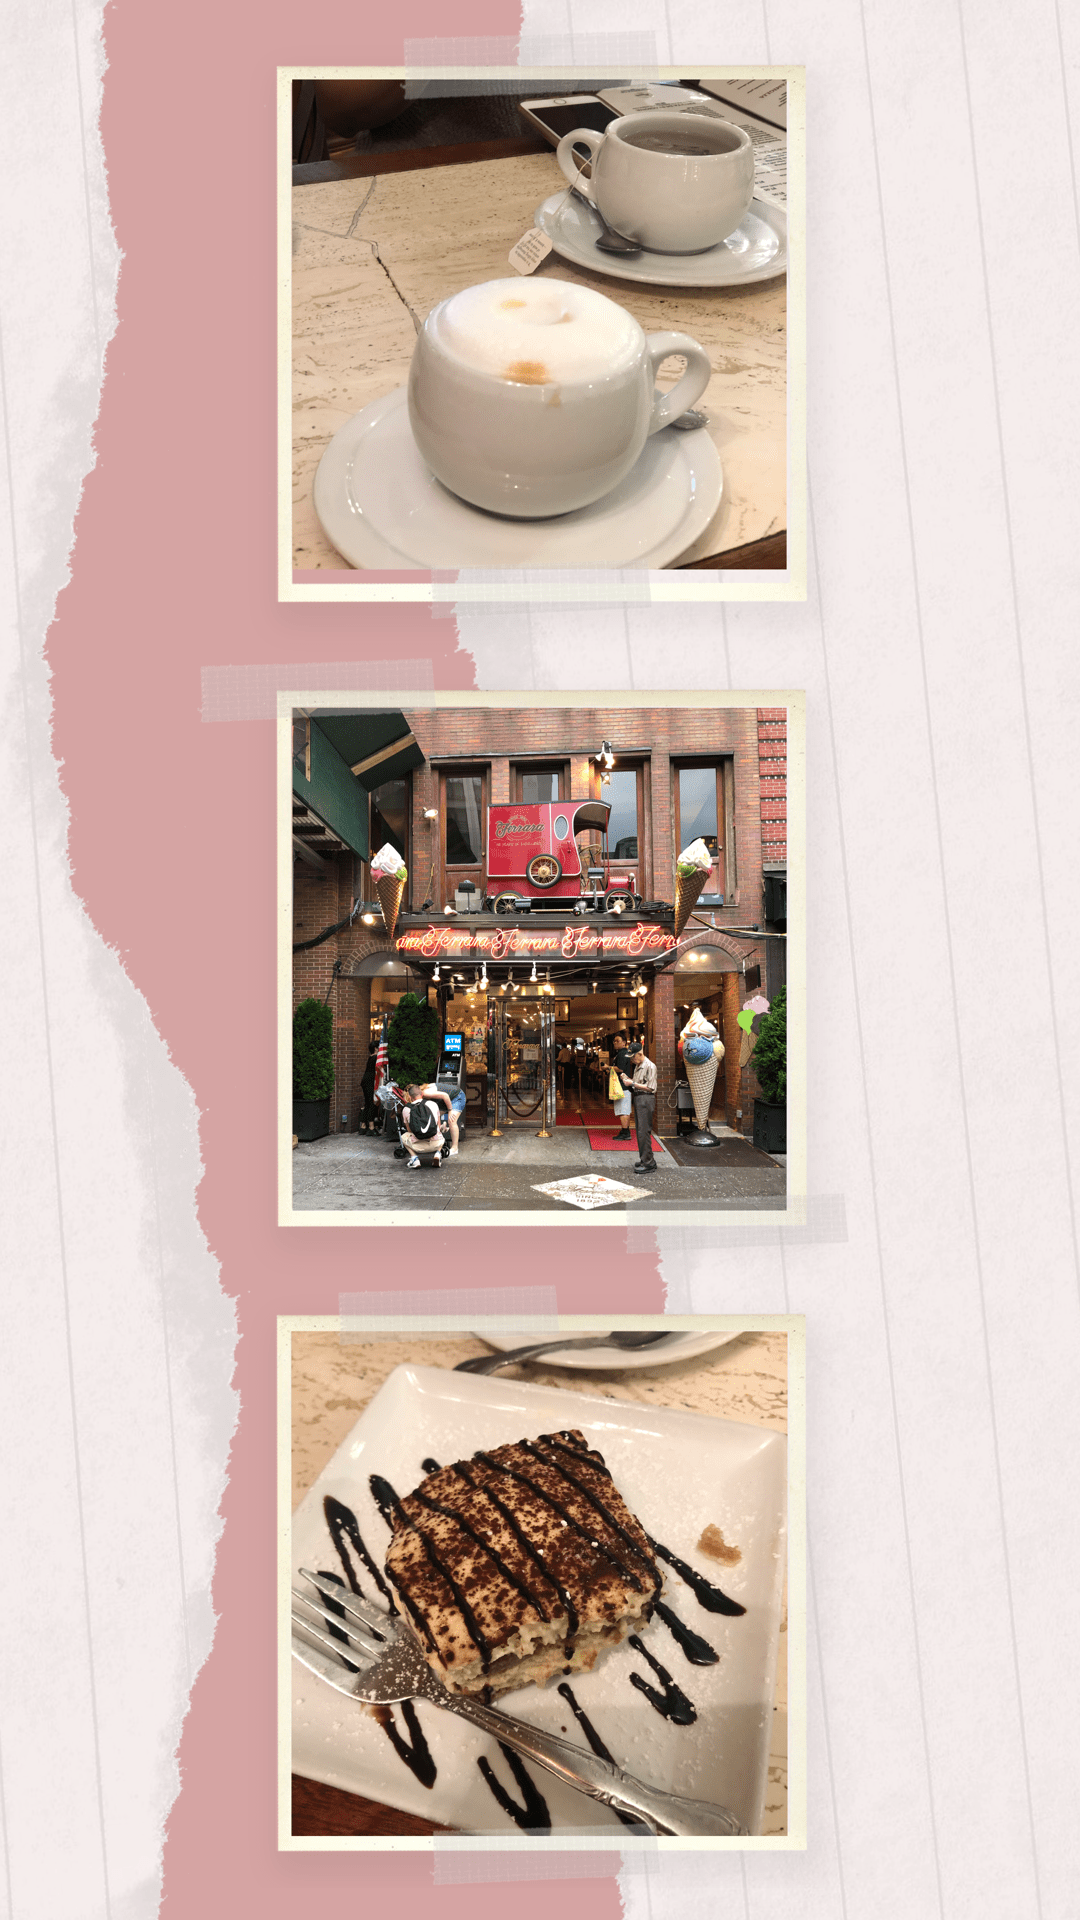 Lifestyle Blogger Chocolate & Lace shares her trip to the Feast of San Gennaro in New York City.